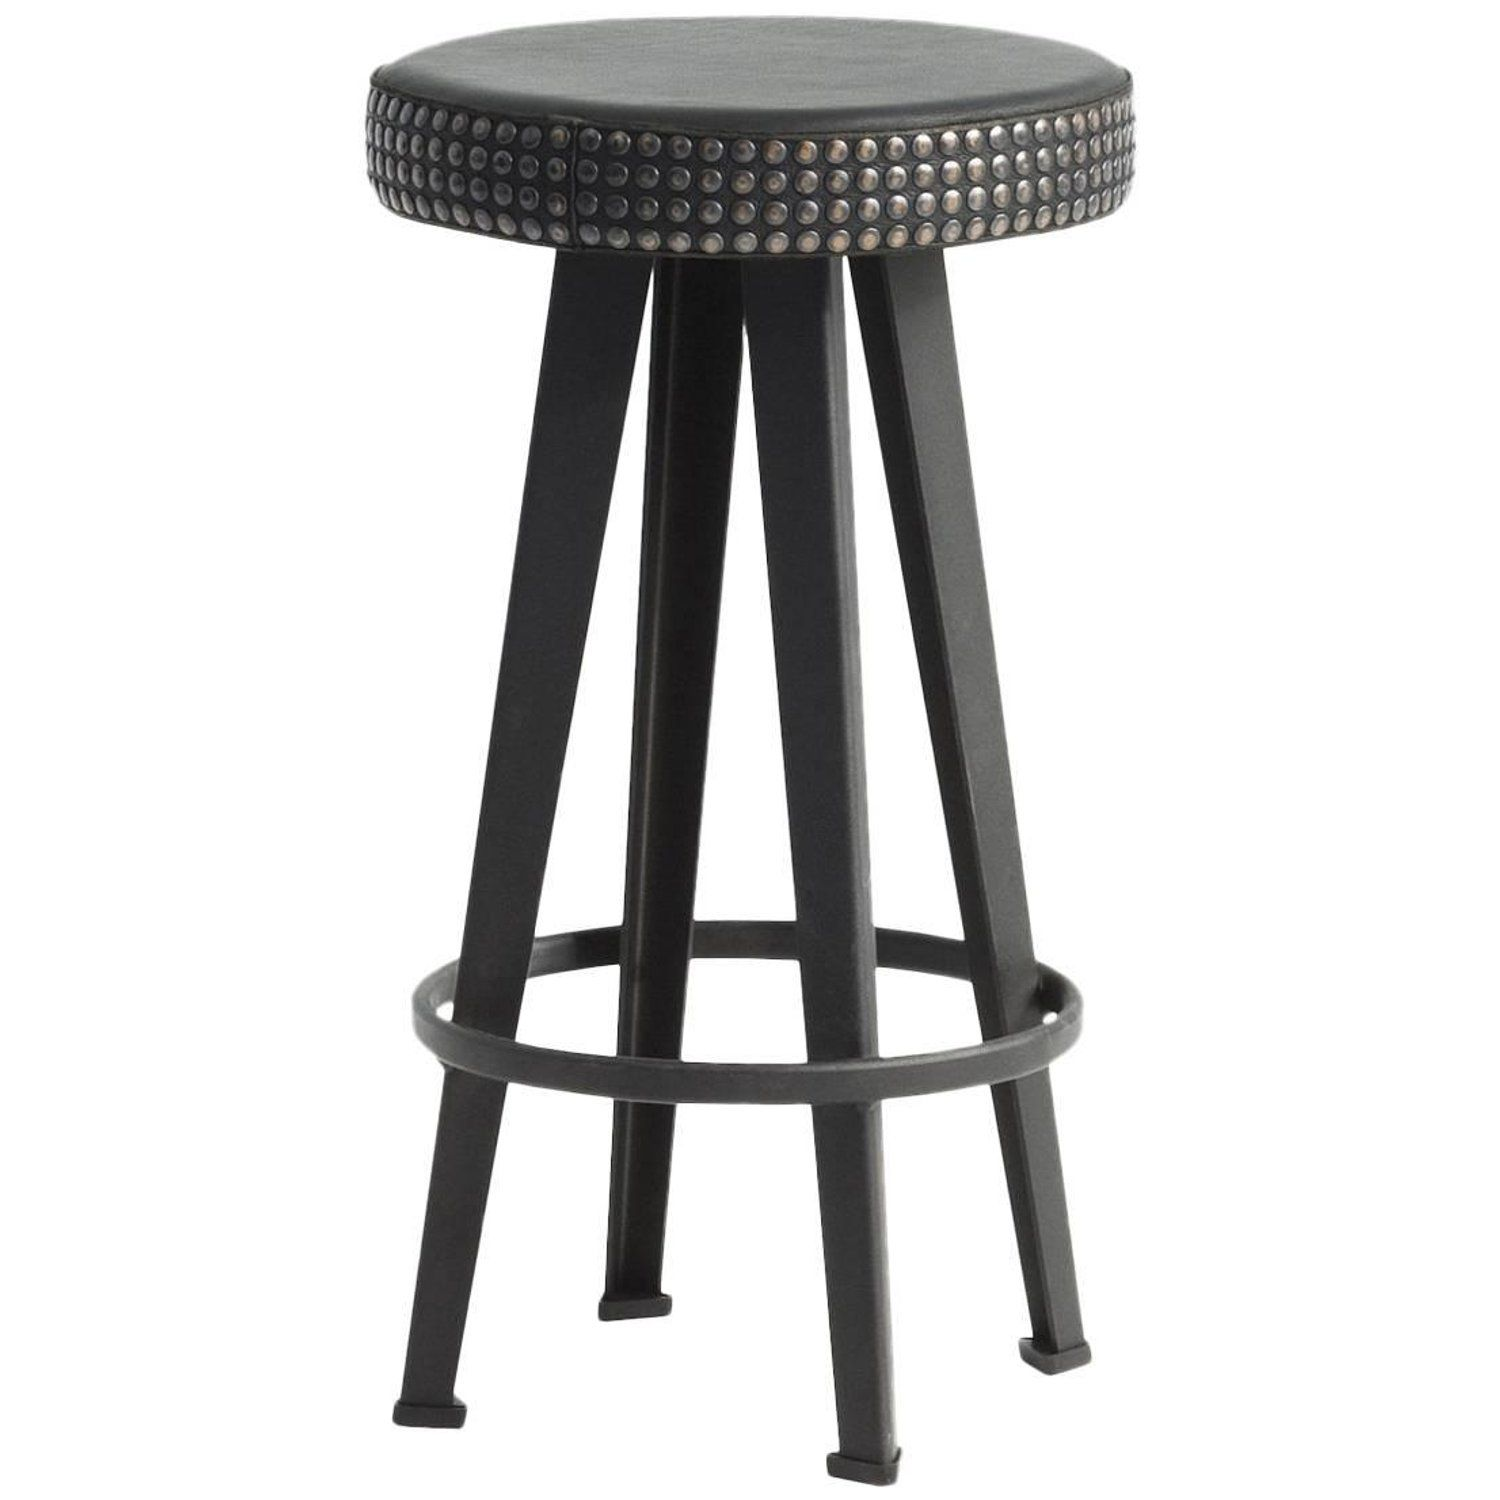 Bar Stud Studded Black Leather And Steel Base Low Stool By Moroso For Diesel Diesel Living Bar Stools High Stool